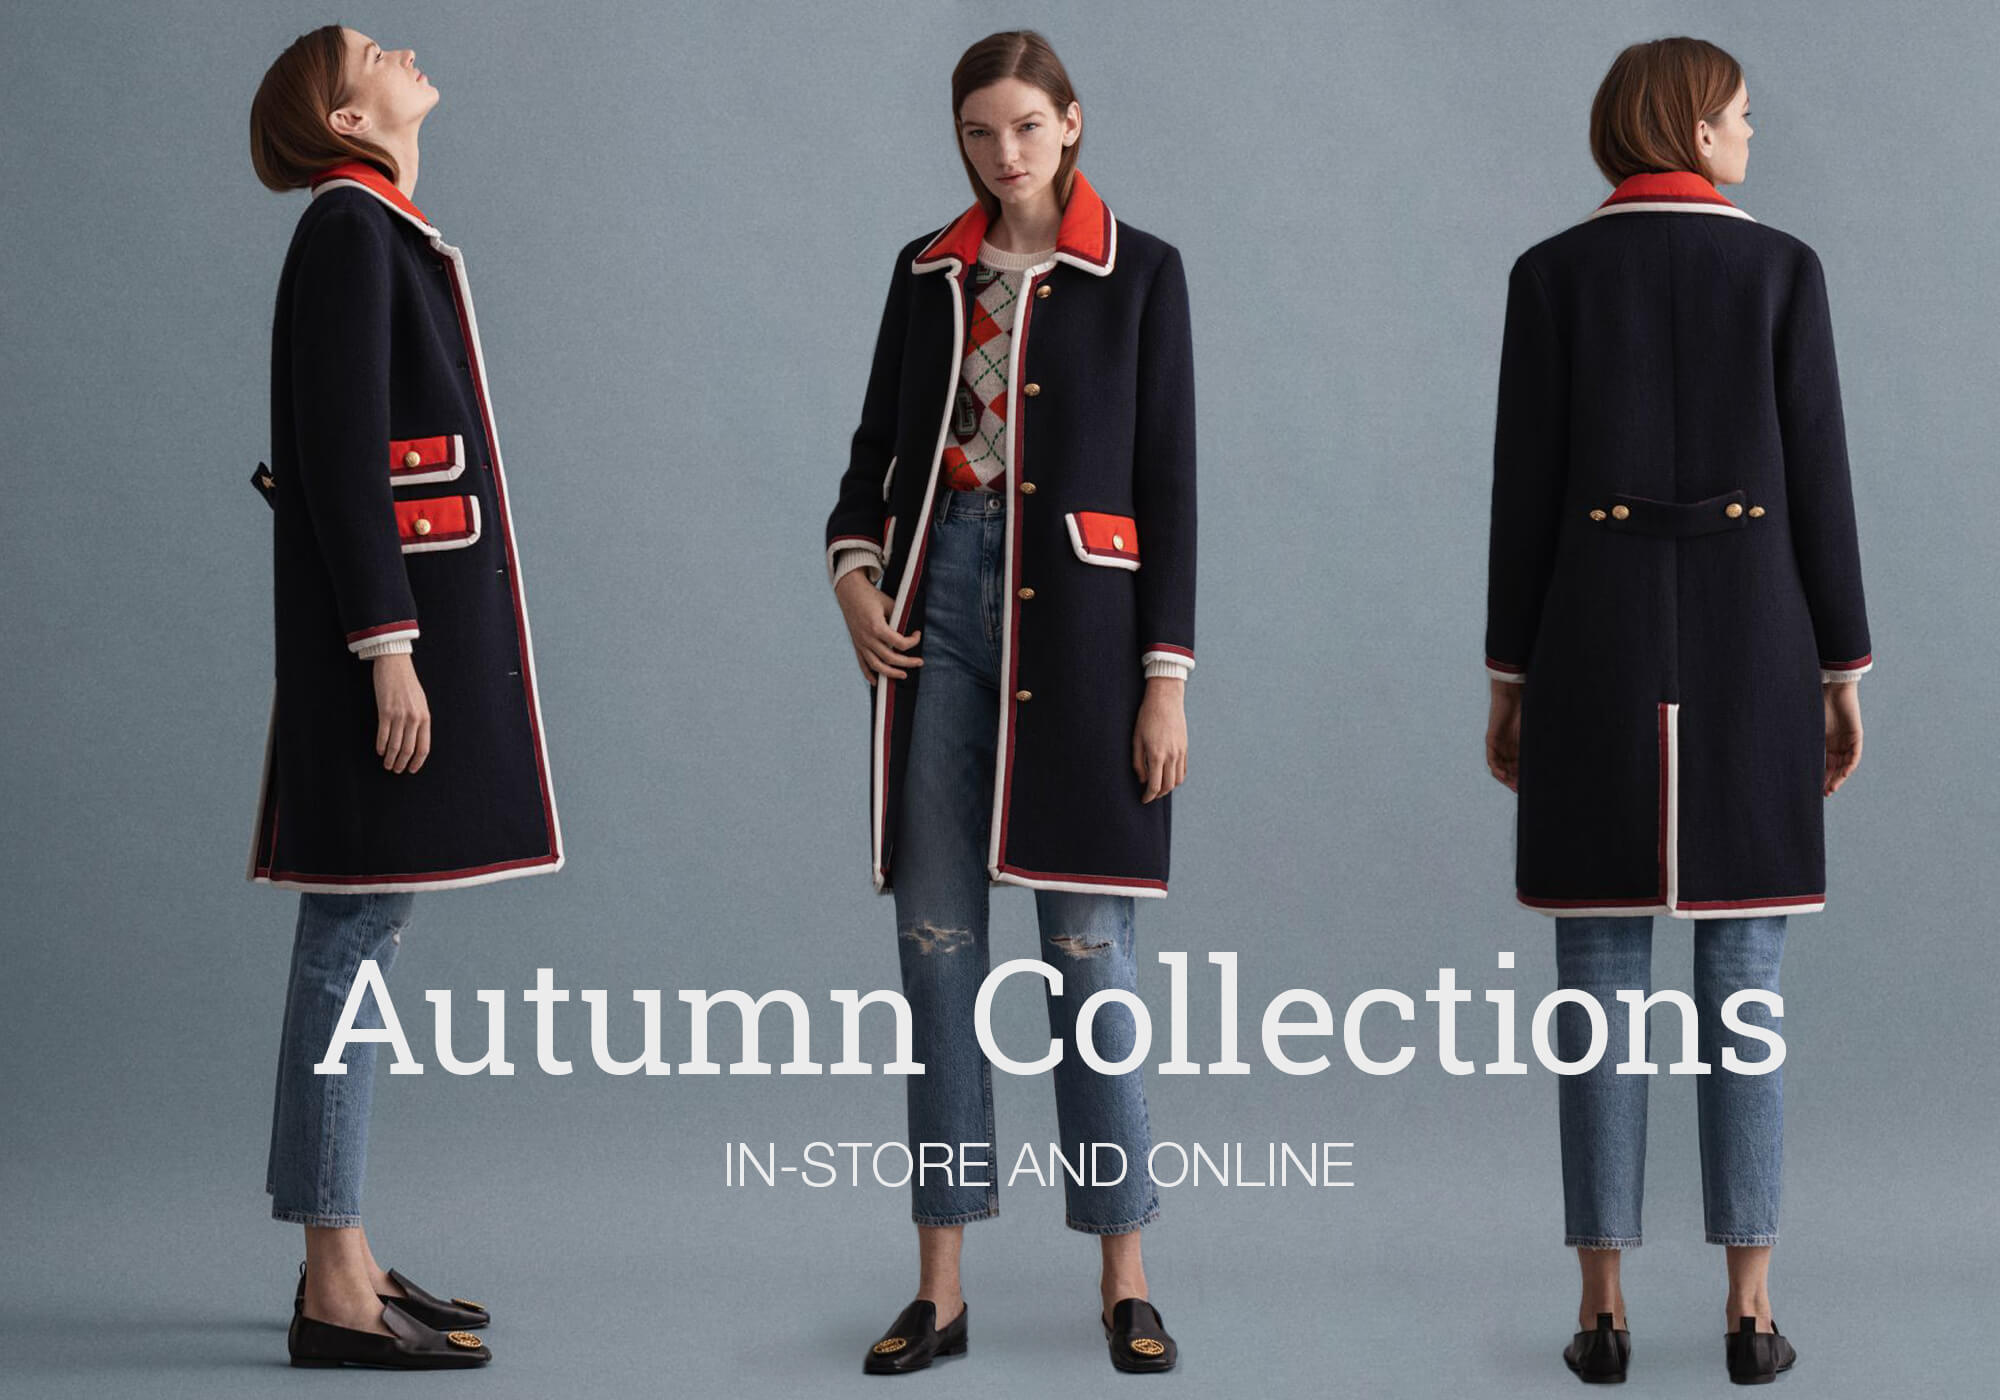 Jane Young AW21 designer collections